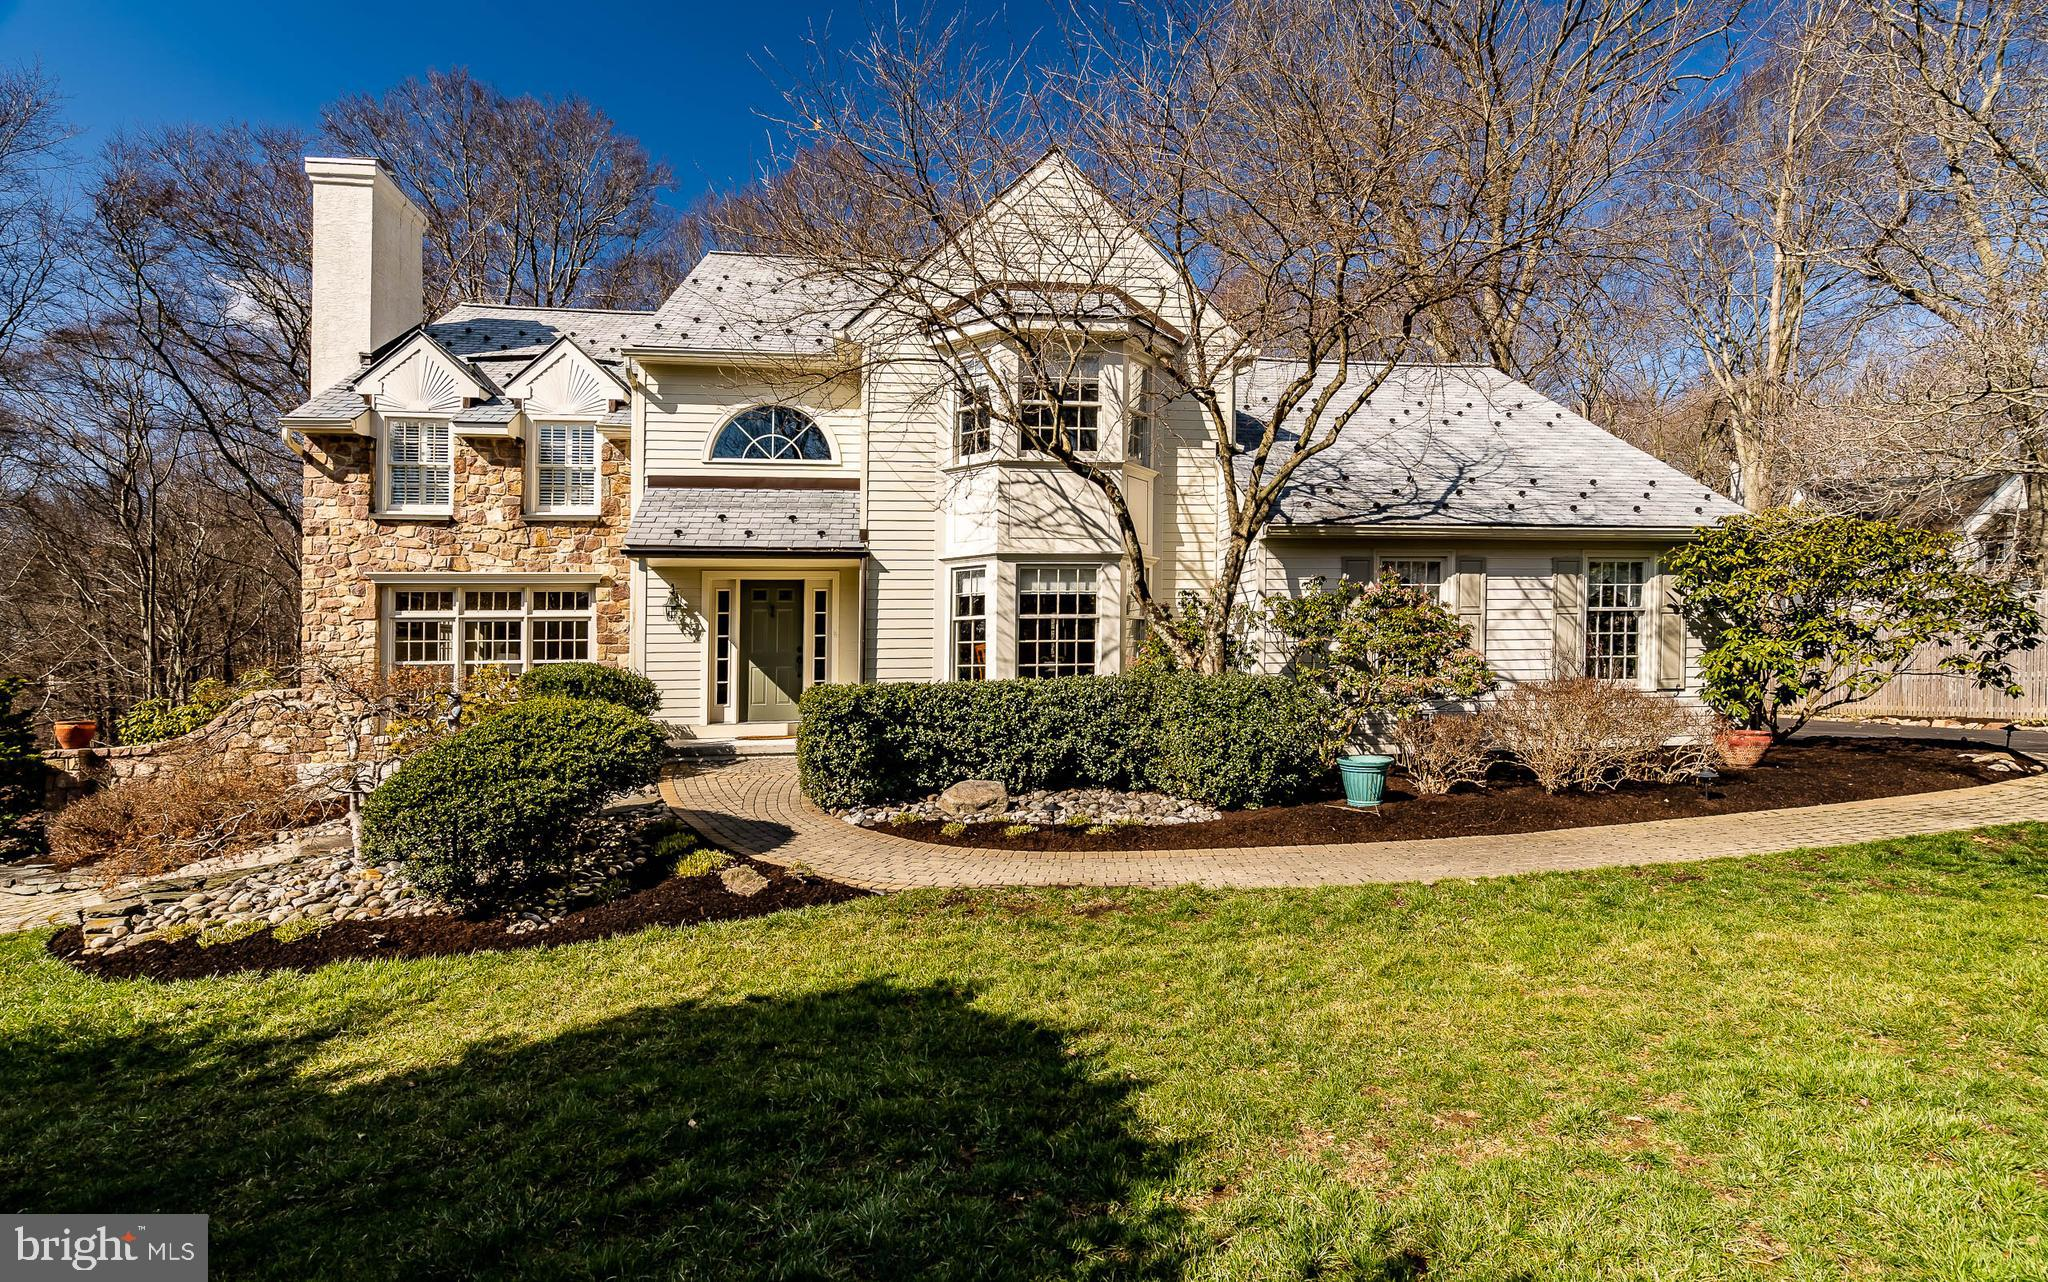 795 TREE LANE, WEST CHESTER, PA 19380